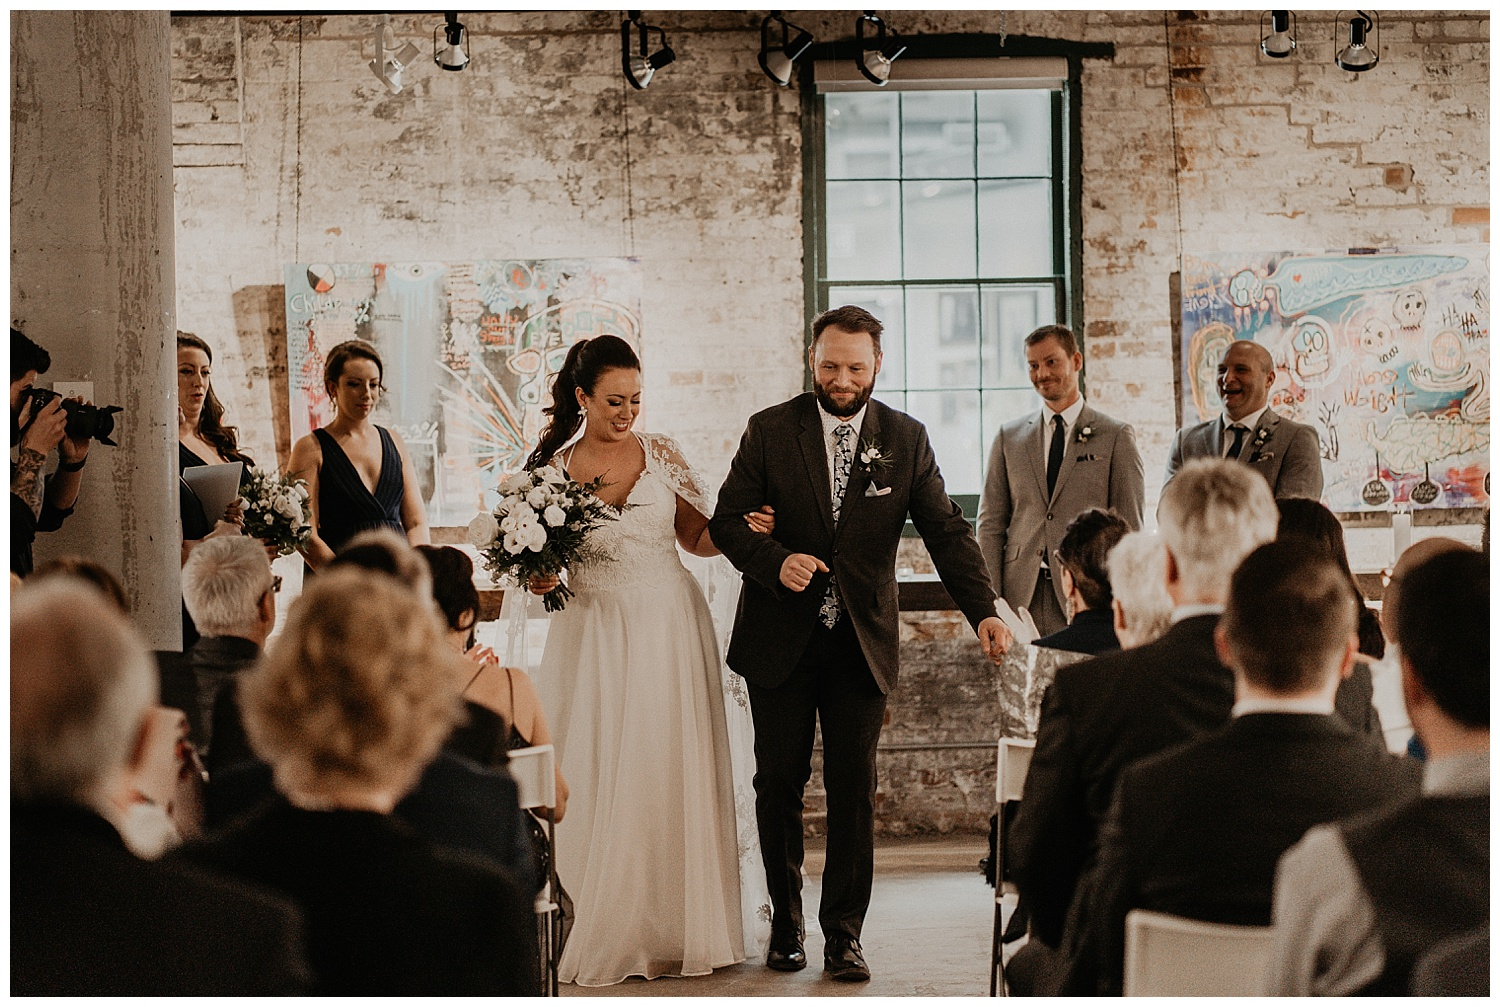 Katie Marie Photography | Archeo Wedding Arta Gallery Wedding | Distillery District Wedding | Toronto Wedding Photographer | Hamilton Toronto Ontario Wedding Photographer |_0111.jpg